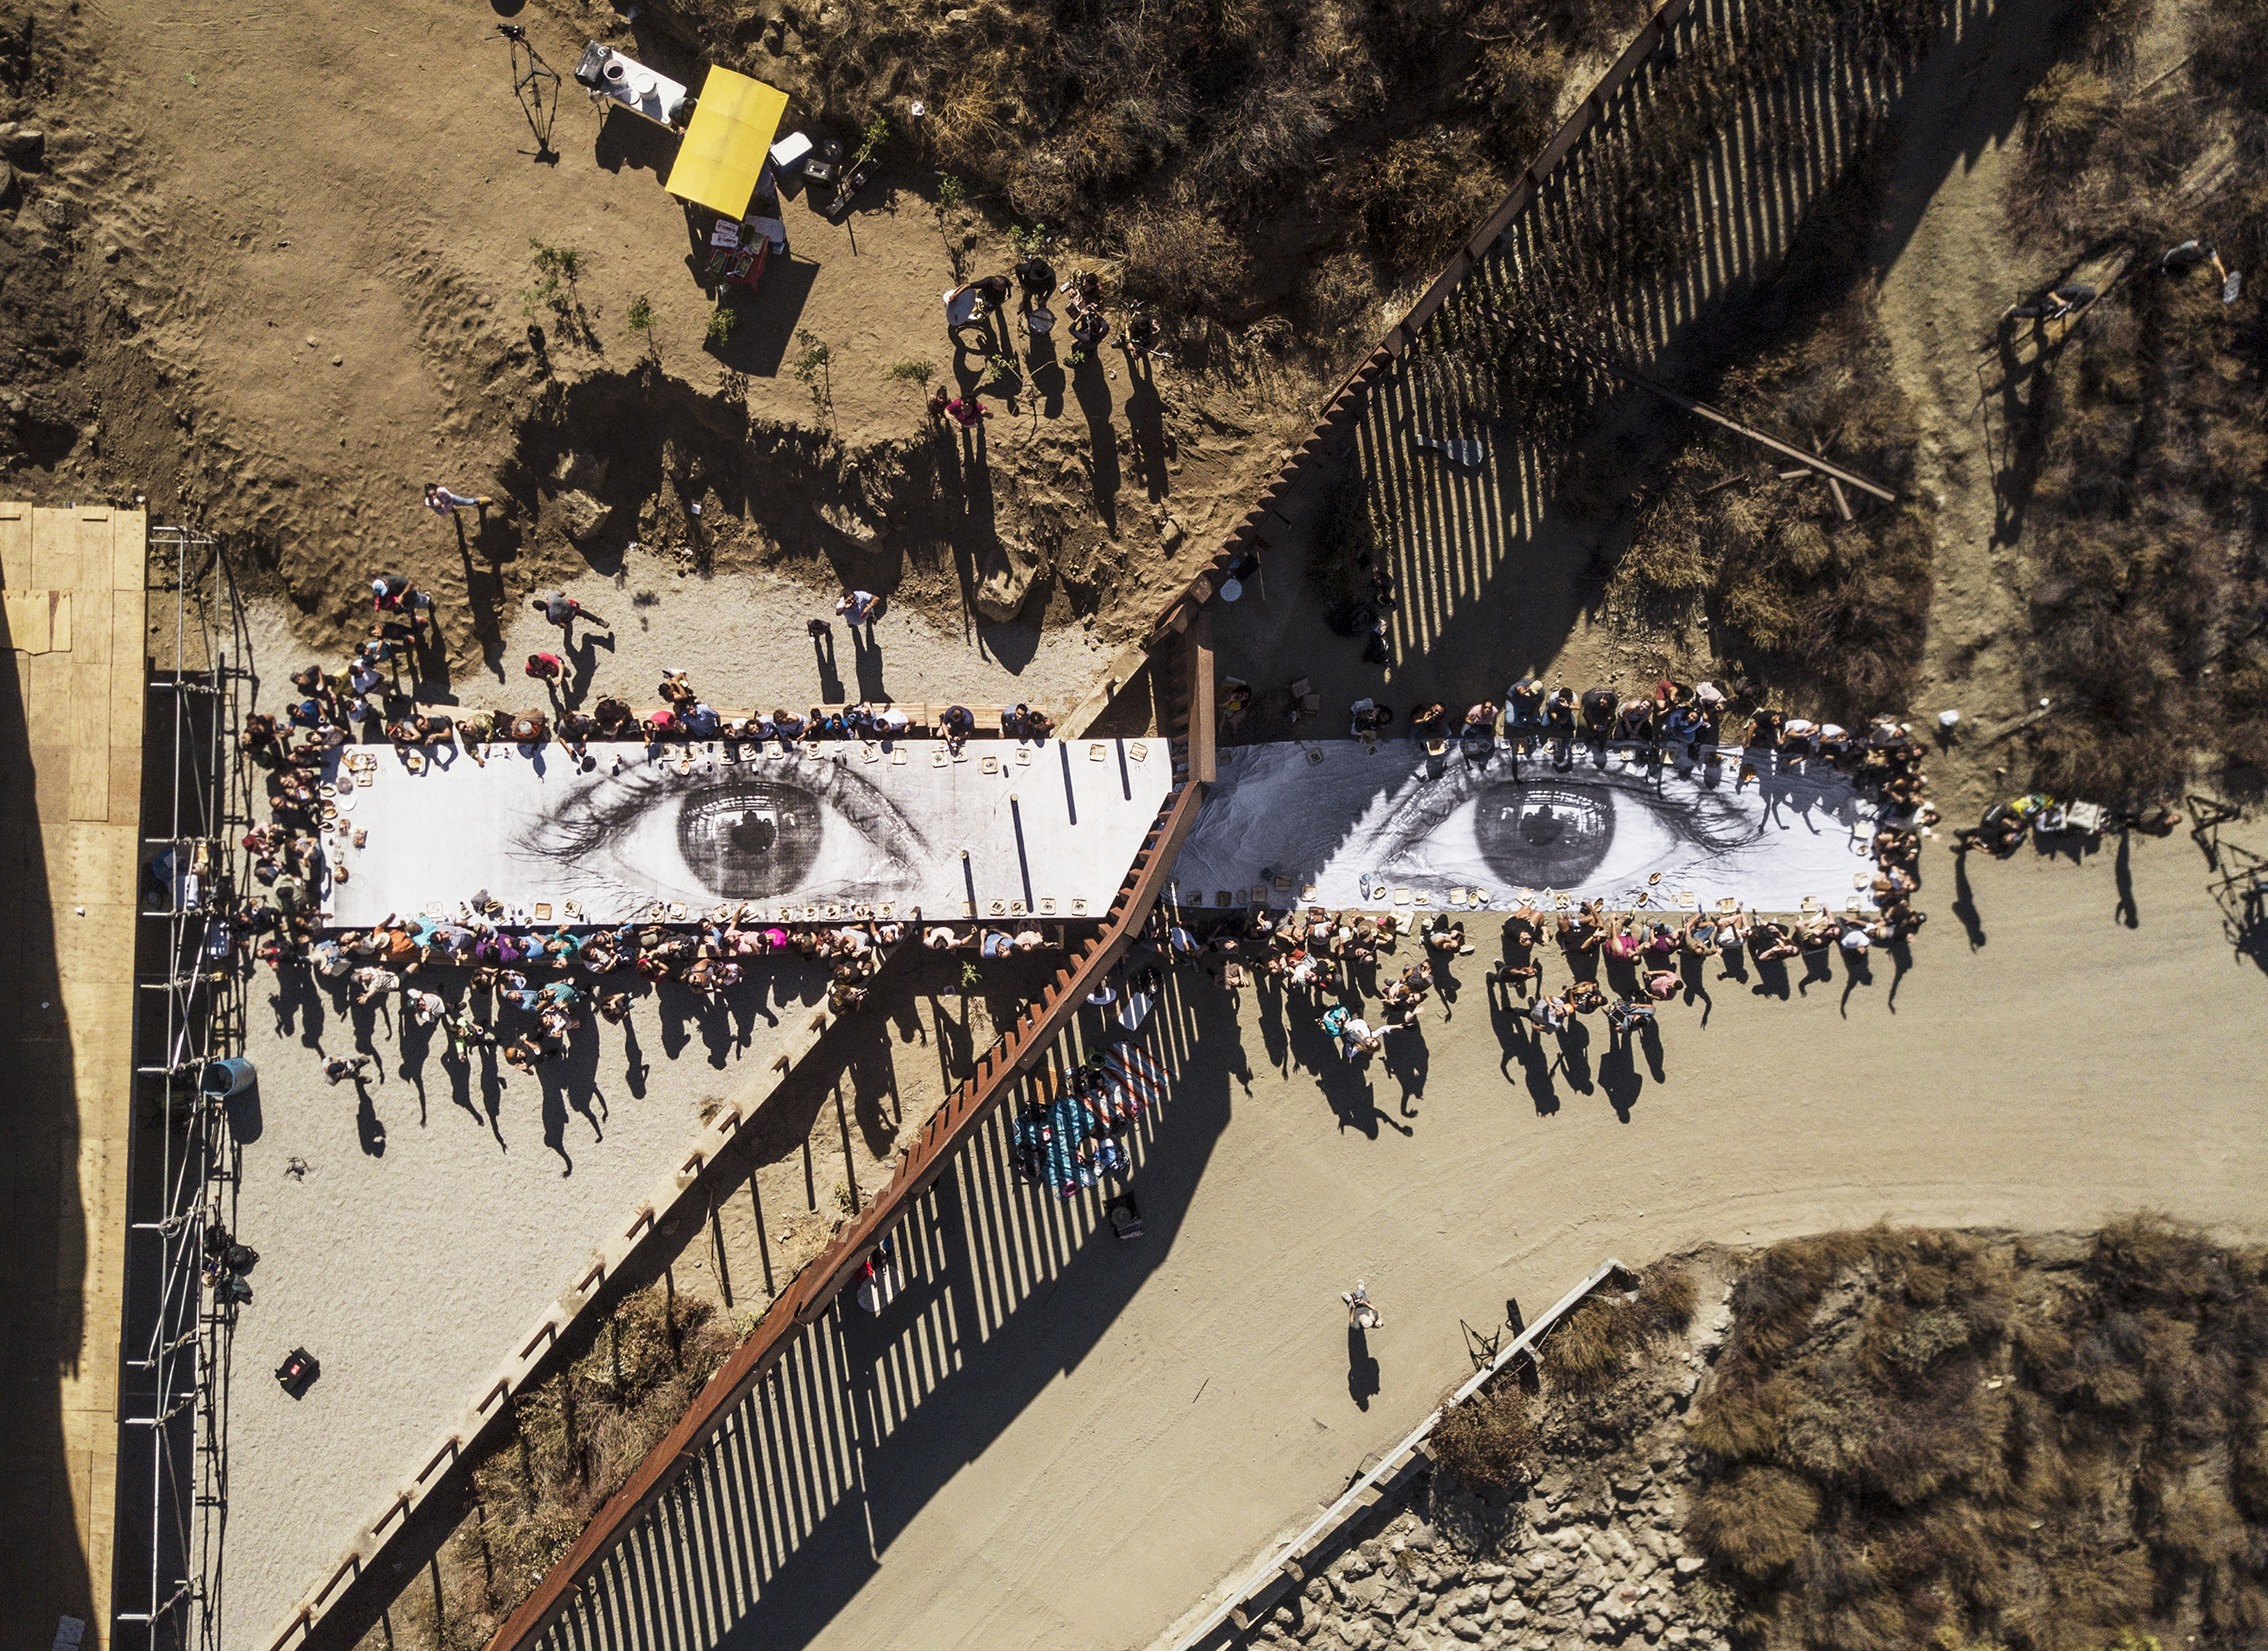 A picnic takes place on JR's Giant Picnic, a photograph of the eyes of a Dreamer at the U.S.-Mexico border in Tecate, Mexico, on Oct. 8